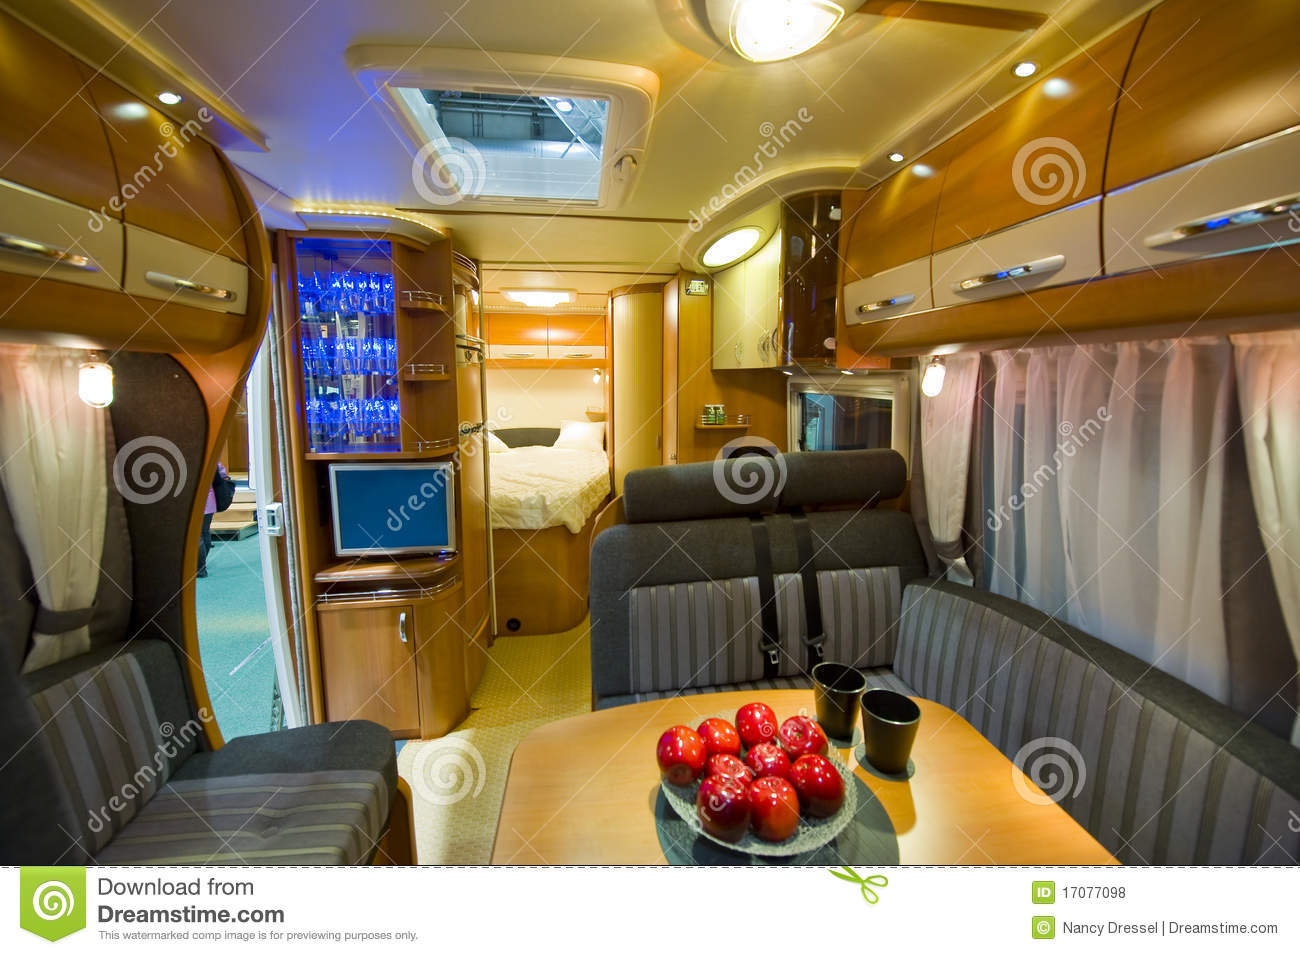 Camping car int rieur photos libres de droits image for Photo en interieur